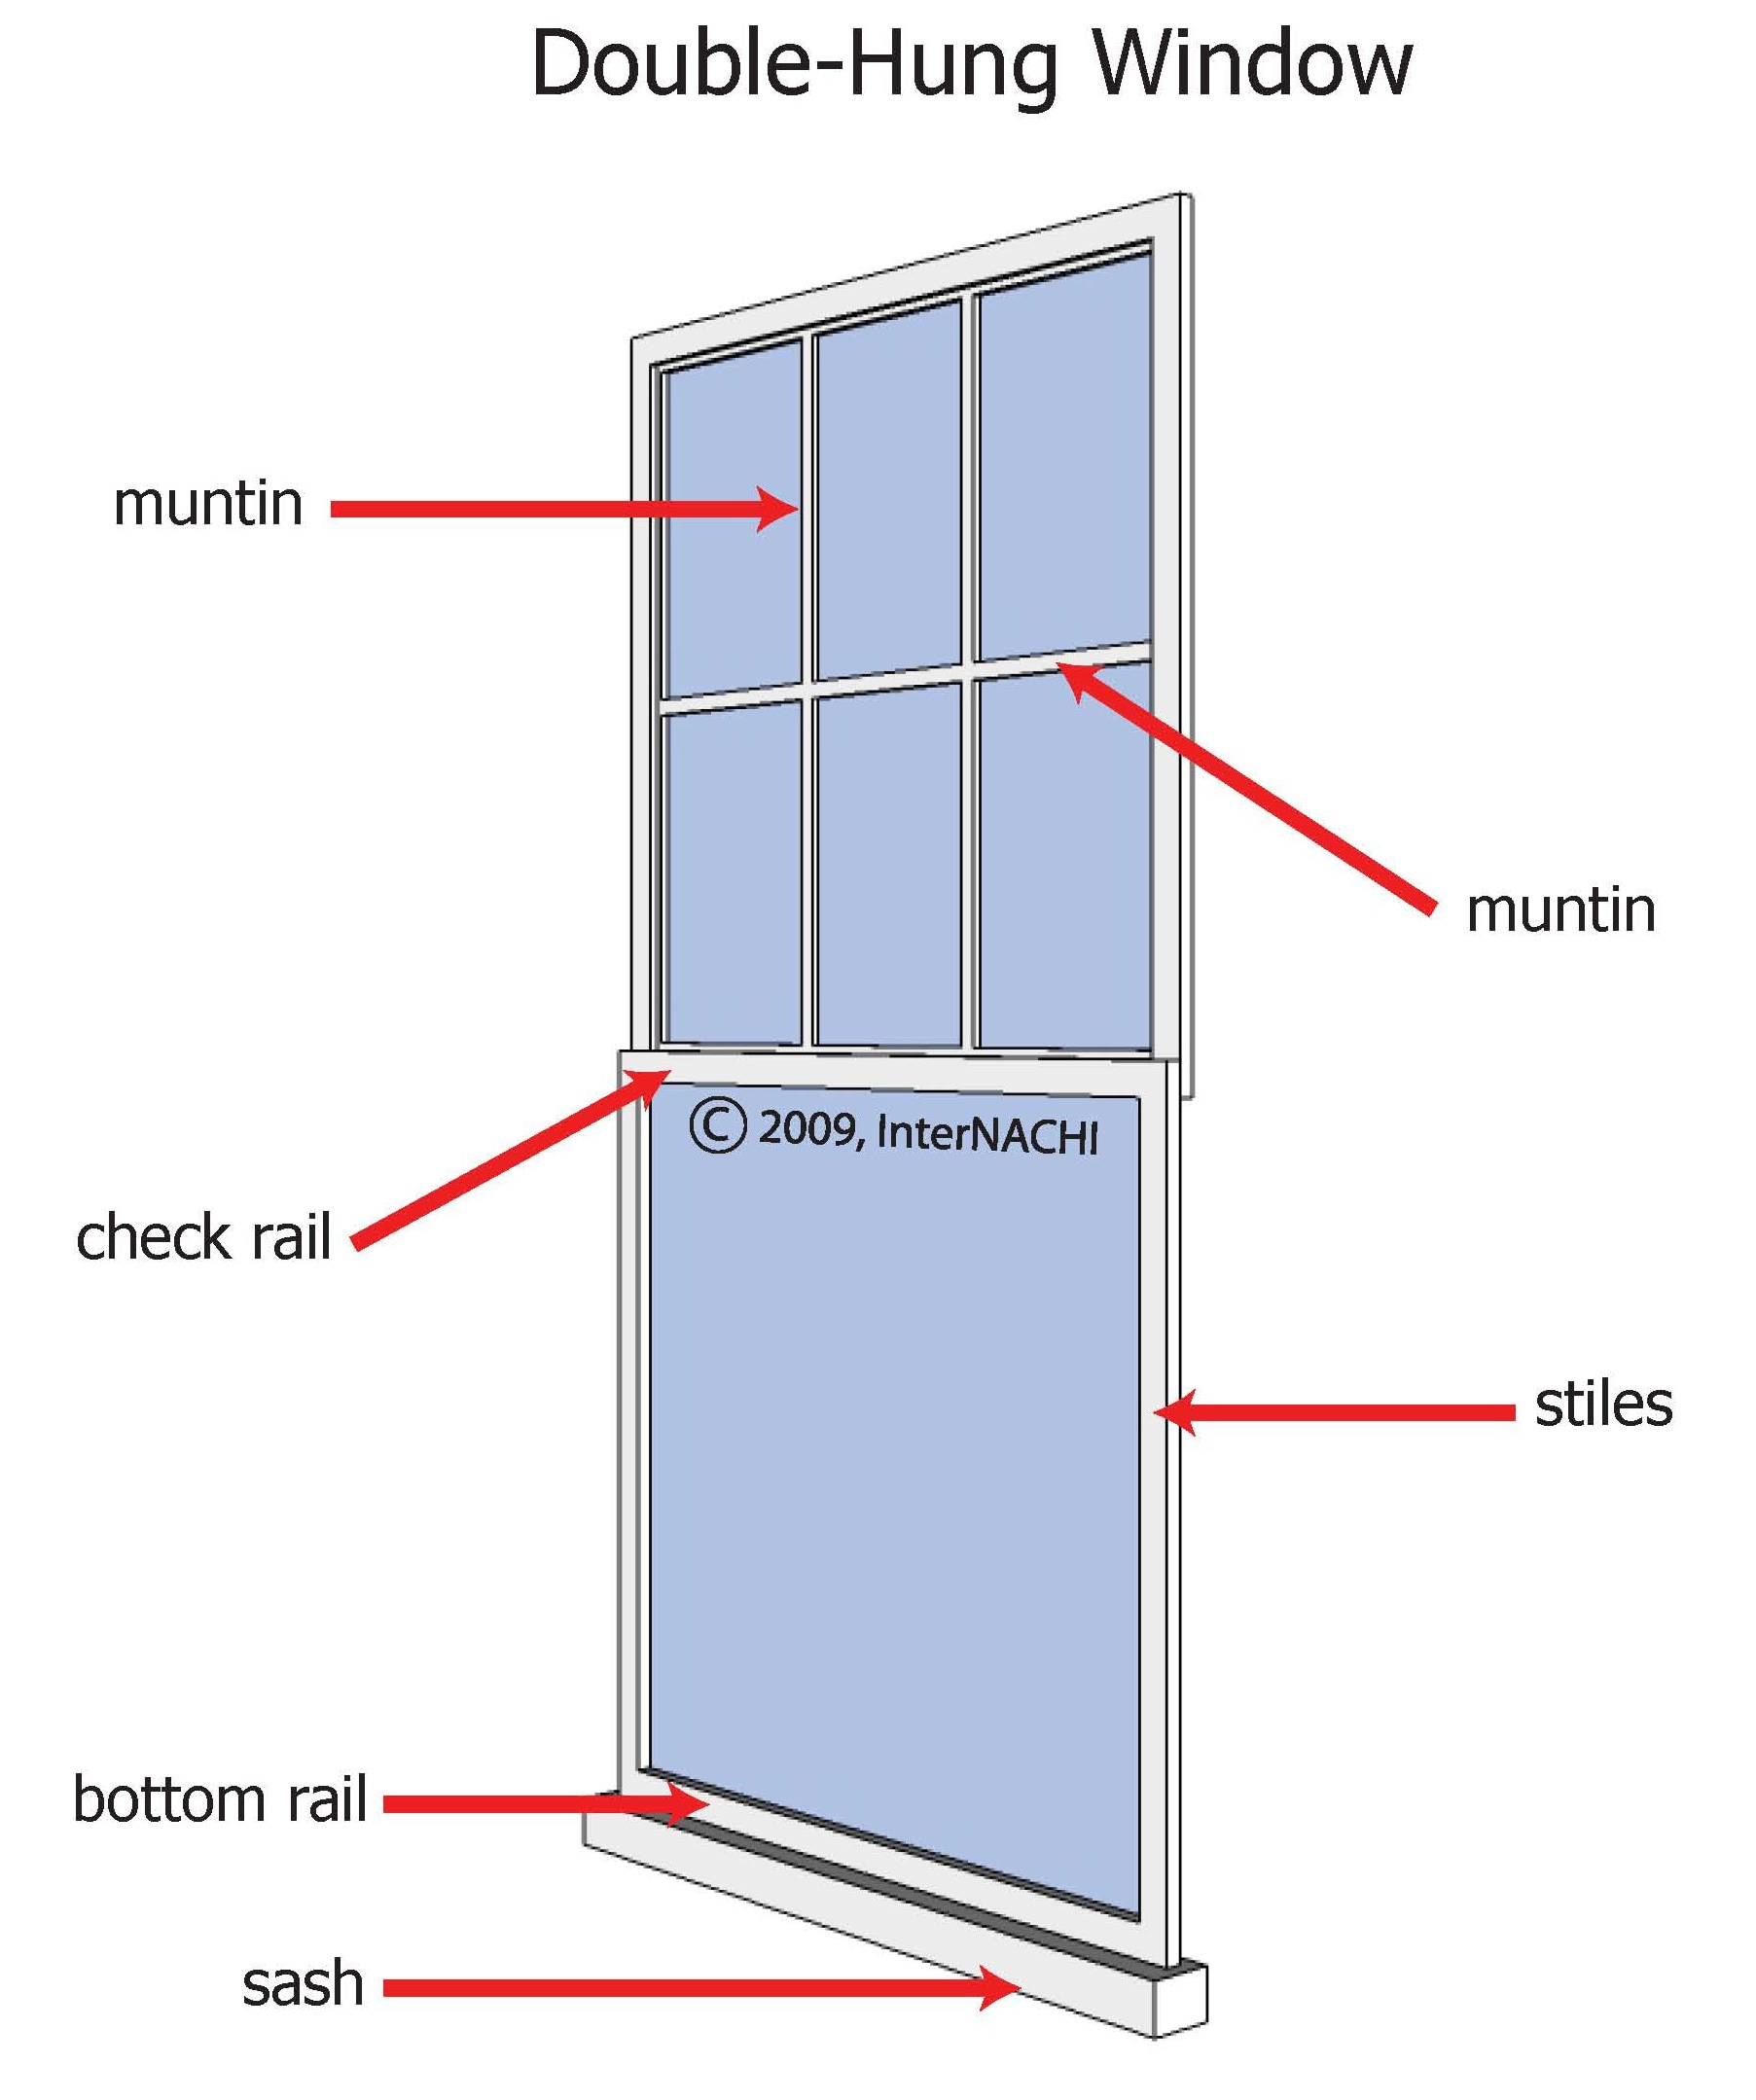 Double-hung windows have two operable sashes that move vertically in the frame.